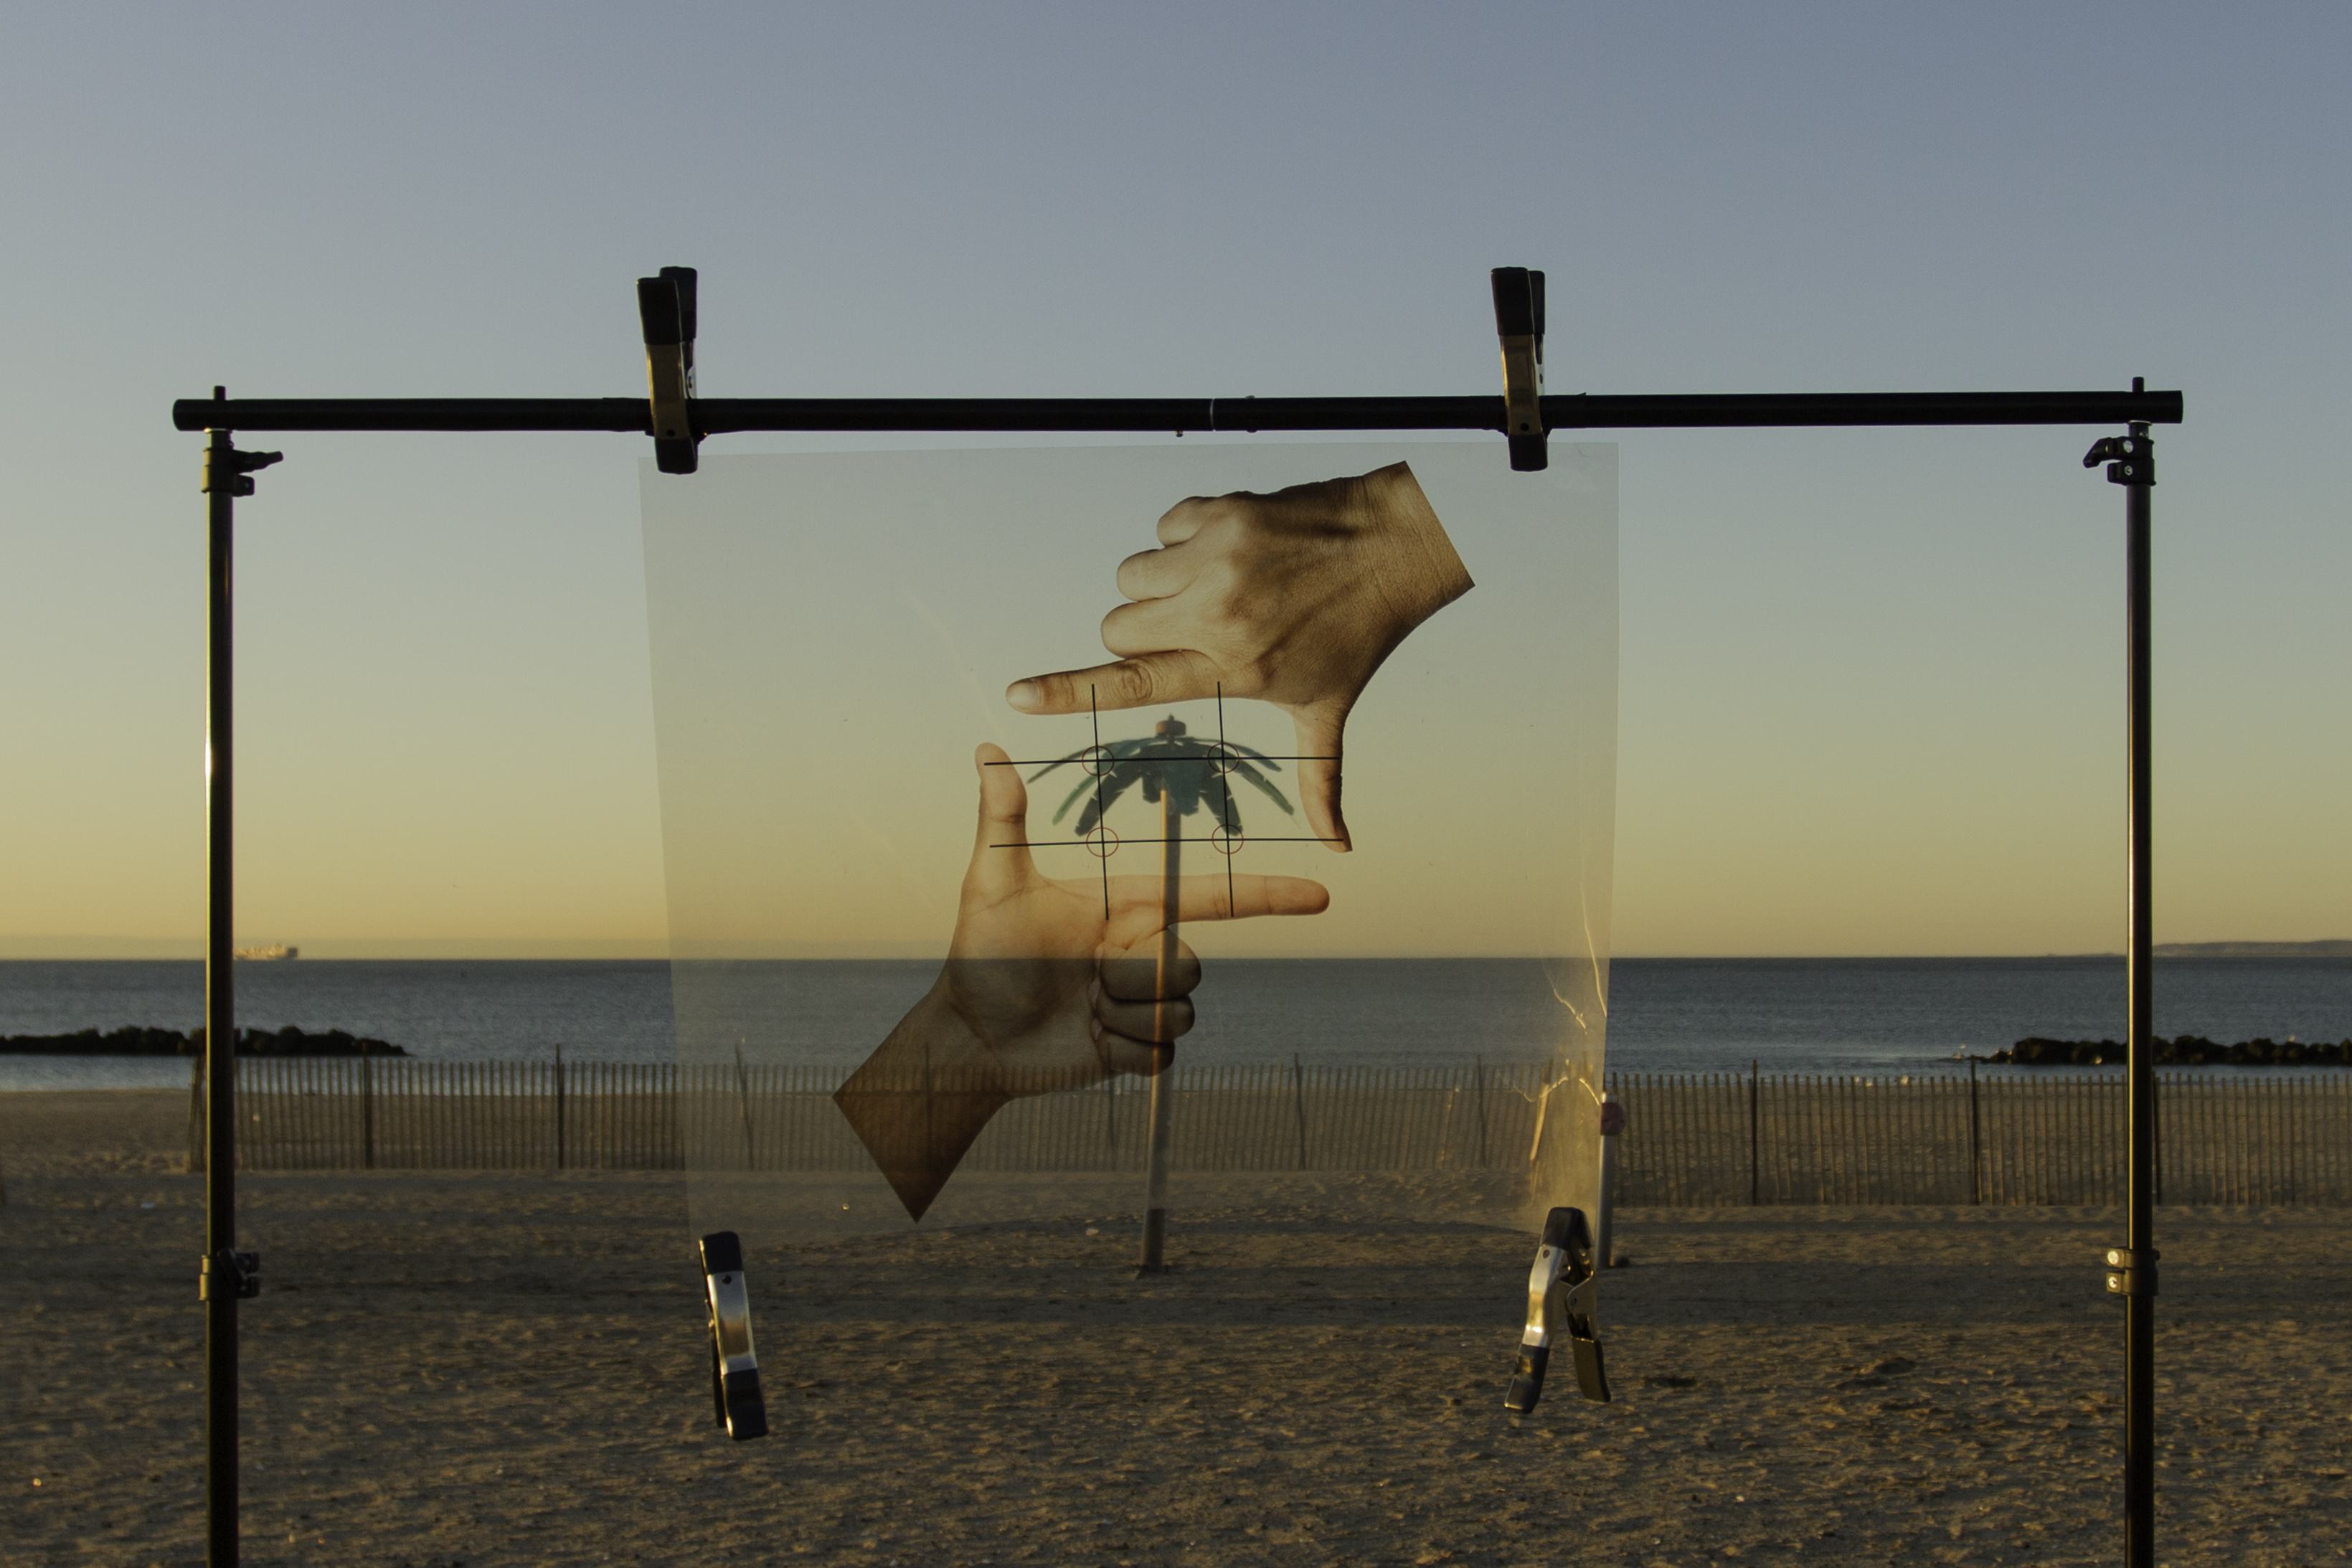 An art image by Tammy Lam, a pair of hands printed on a transparency are clipped to an apparatus framing a fake palm tree on a beach.